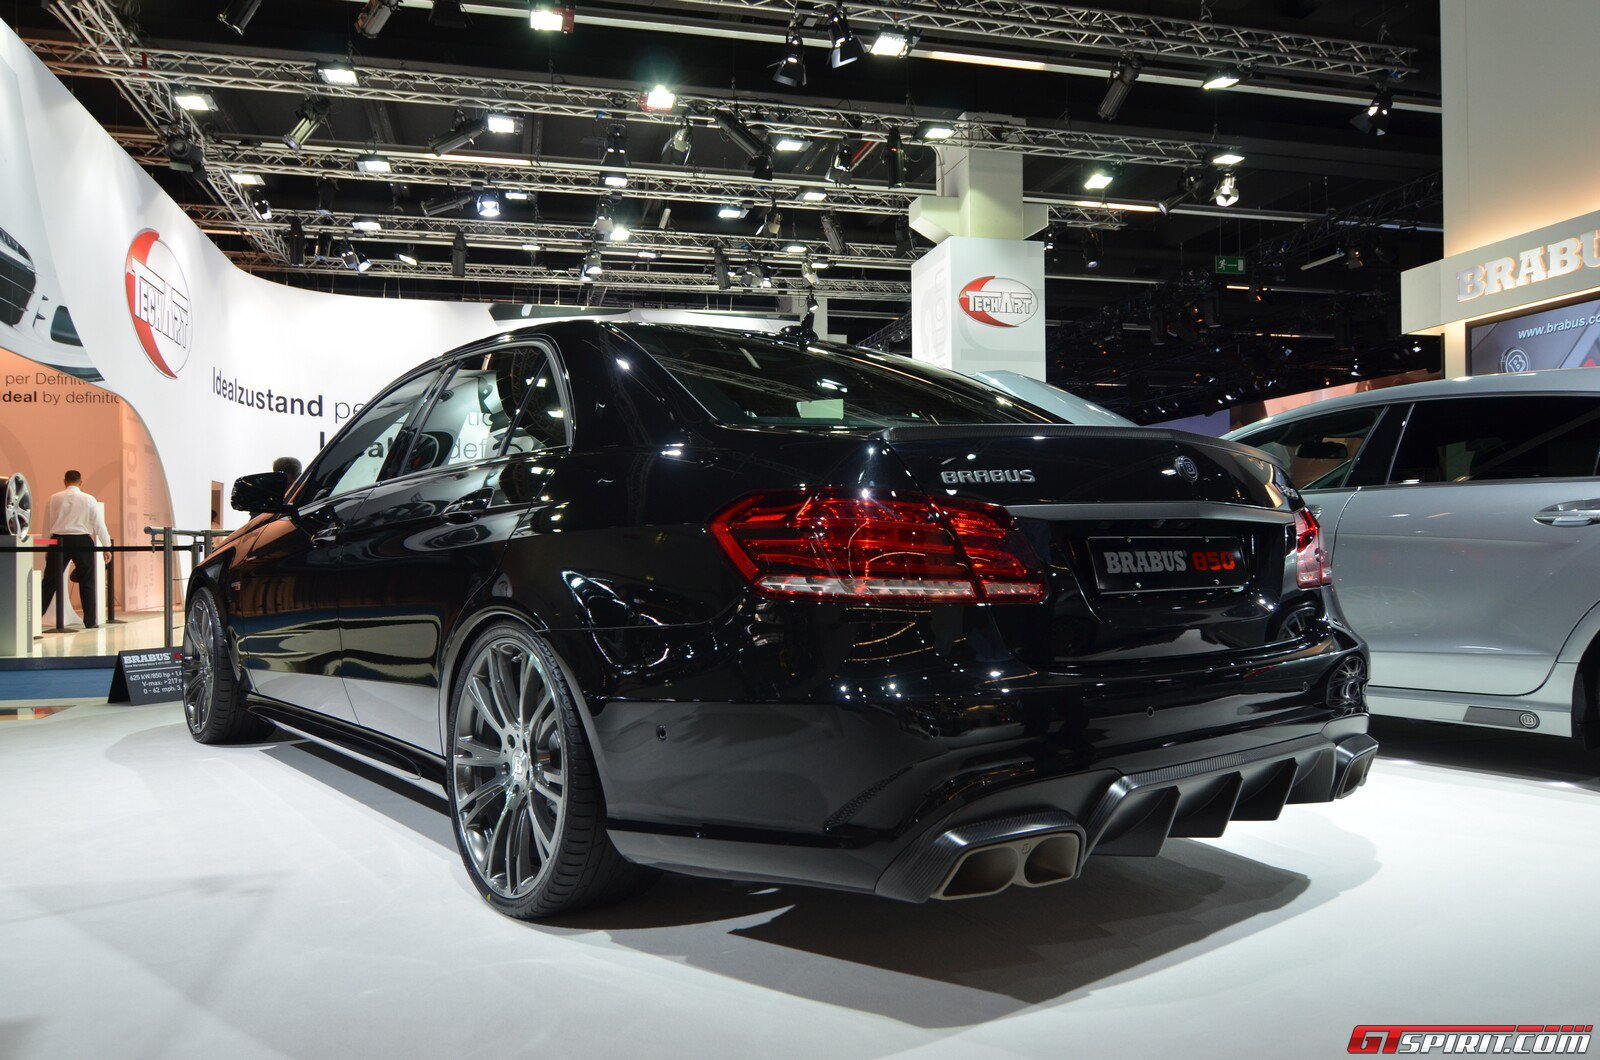 brabus 850 6.0 biturbo - mbworld forums